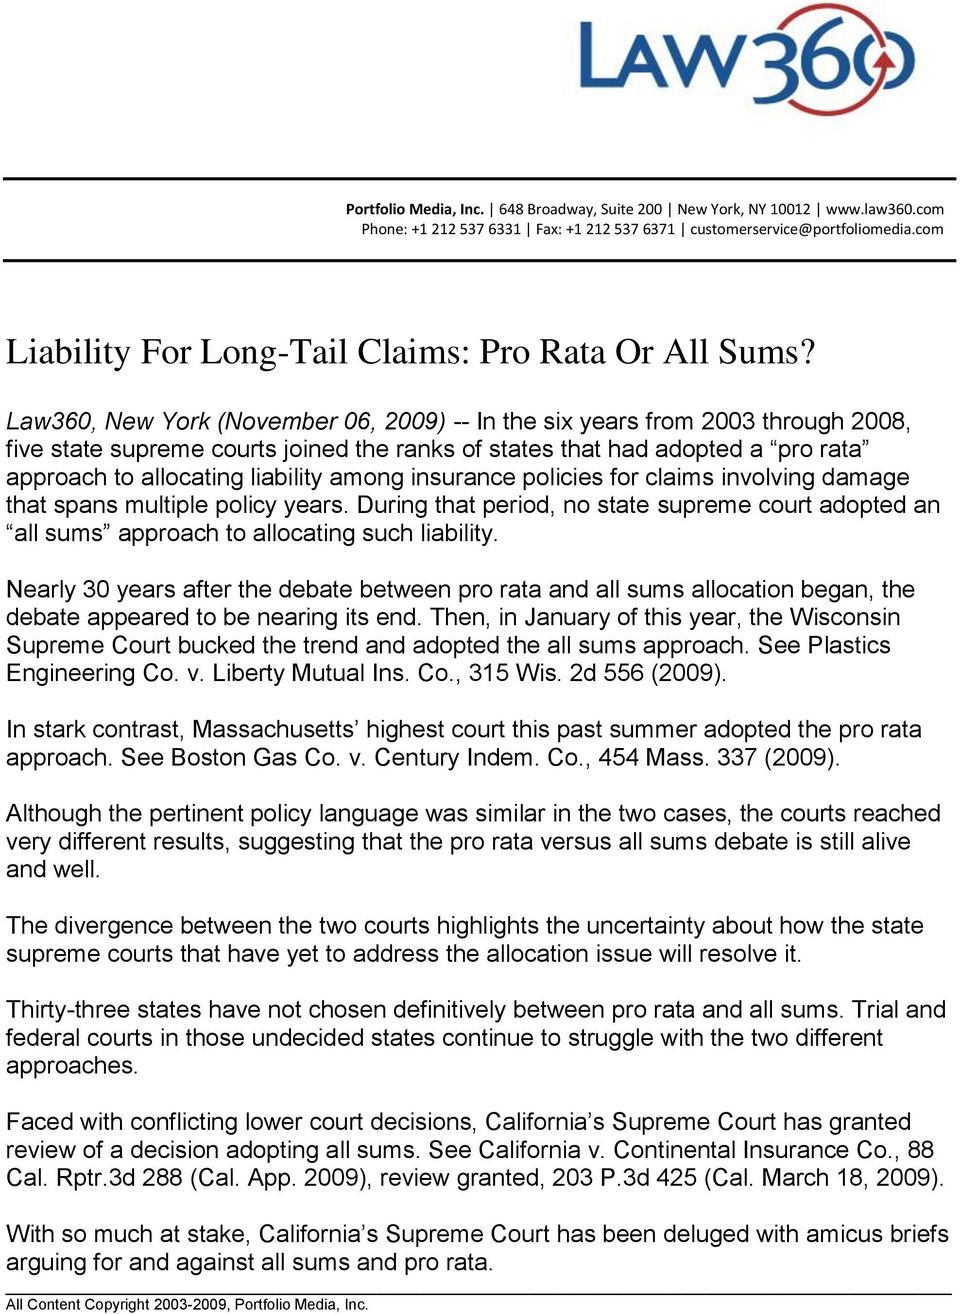 Law360, New York (November 06, 2009) -- In the six years from 2003 through 2008, five state supreme courts joined the ranks of states that had adopted a pro rata approach to allocating liability